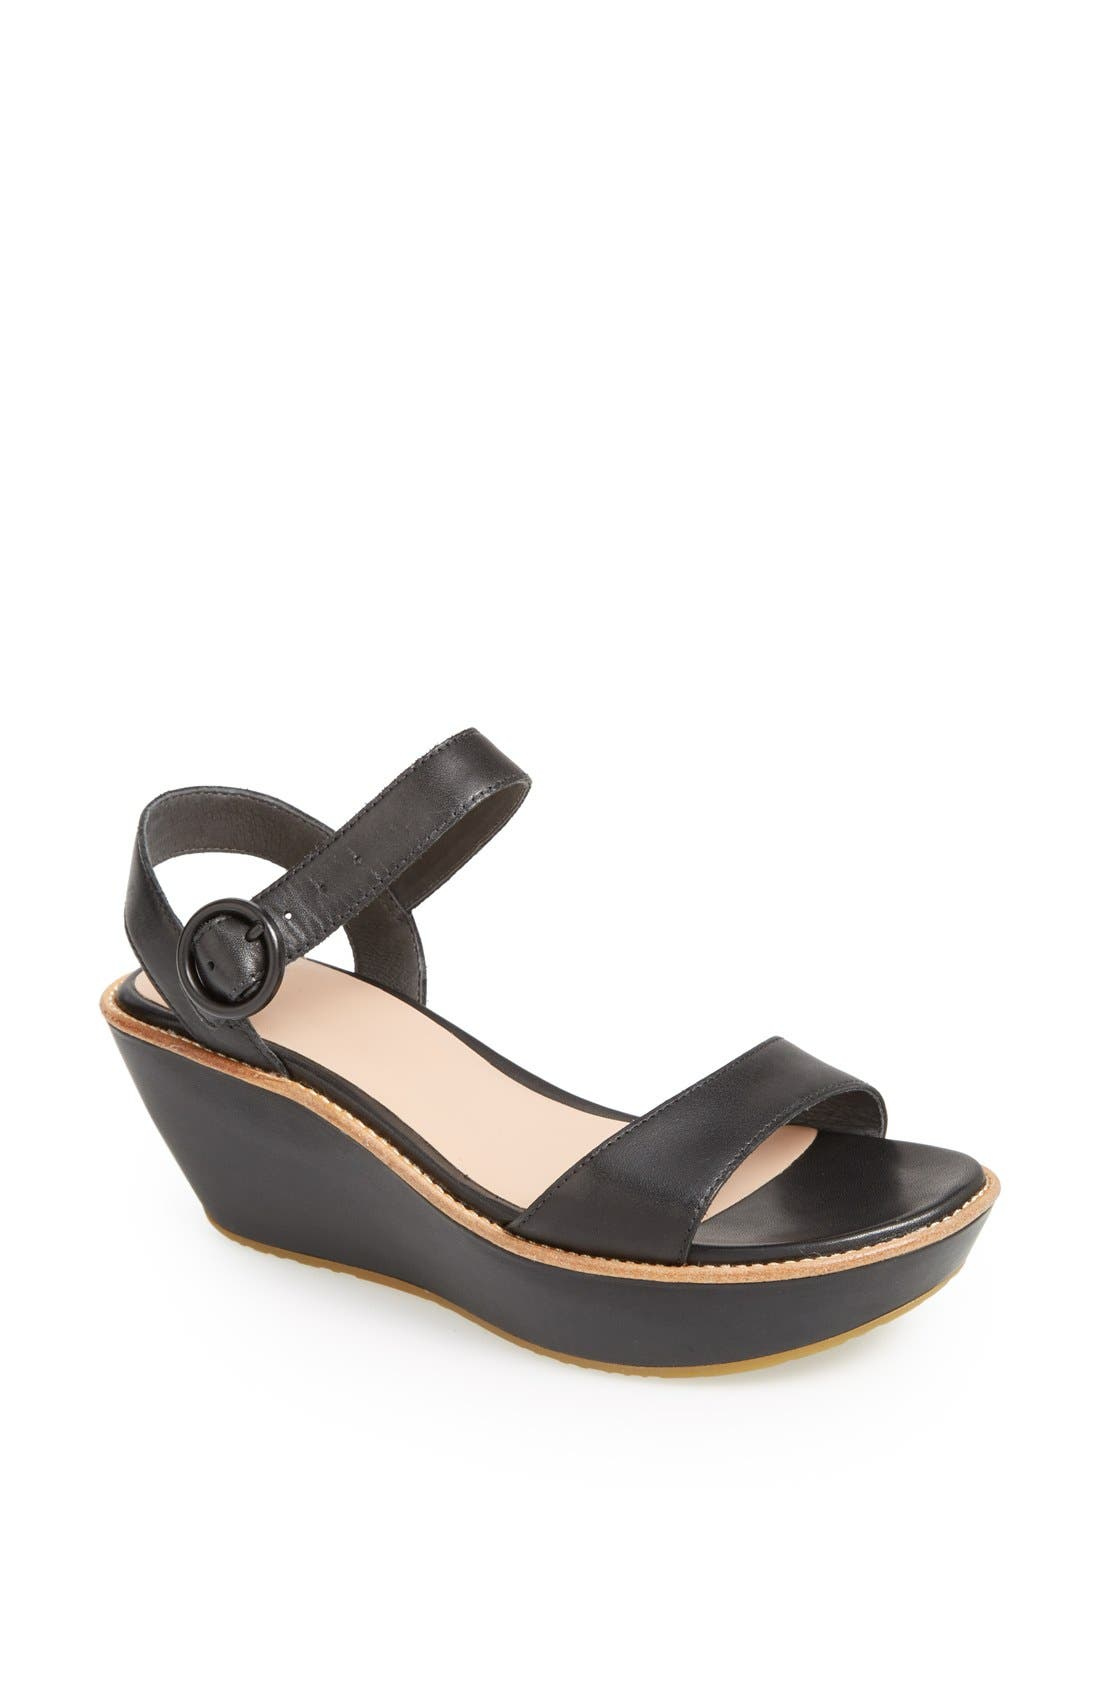 Main Image - Camper 'Damas' Wedge Sandal